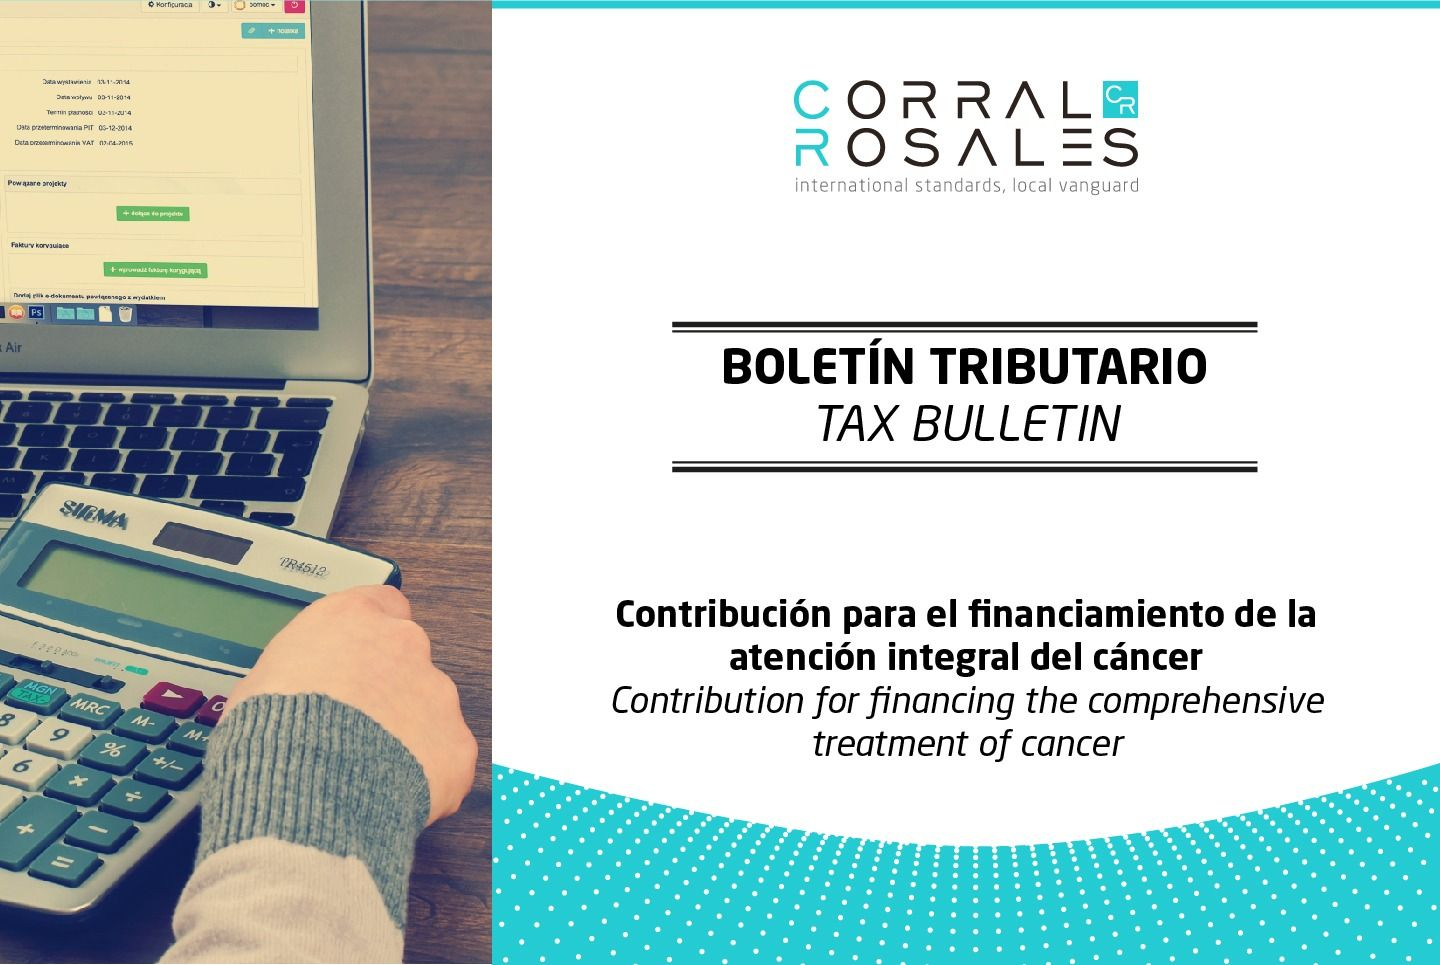 cancer-financing-comprehensive-treatment-tax